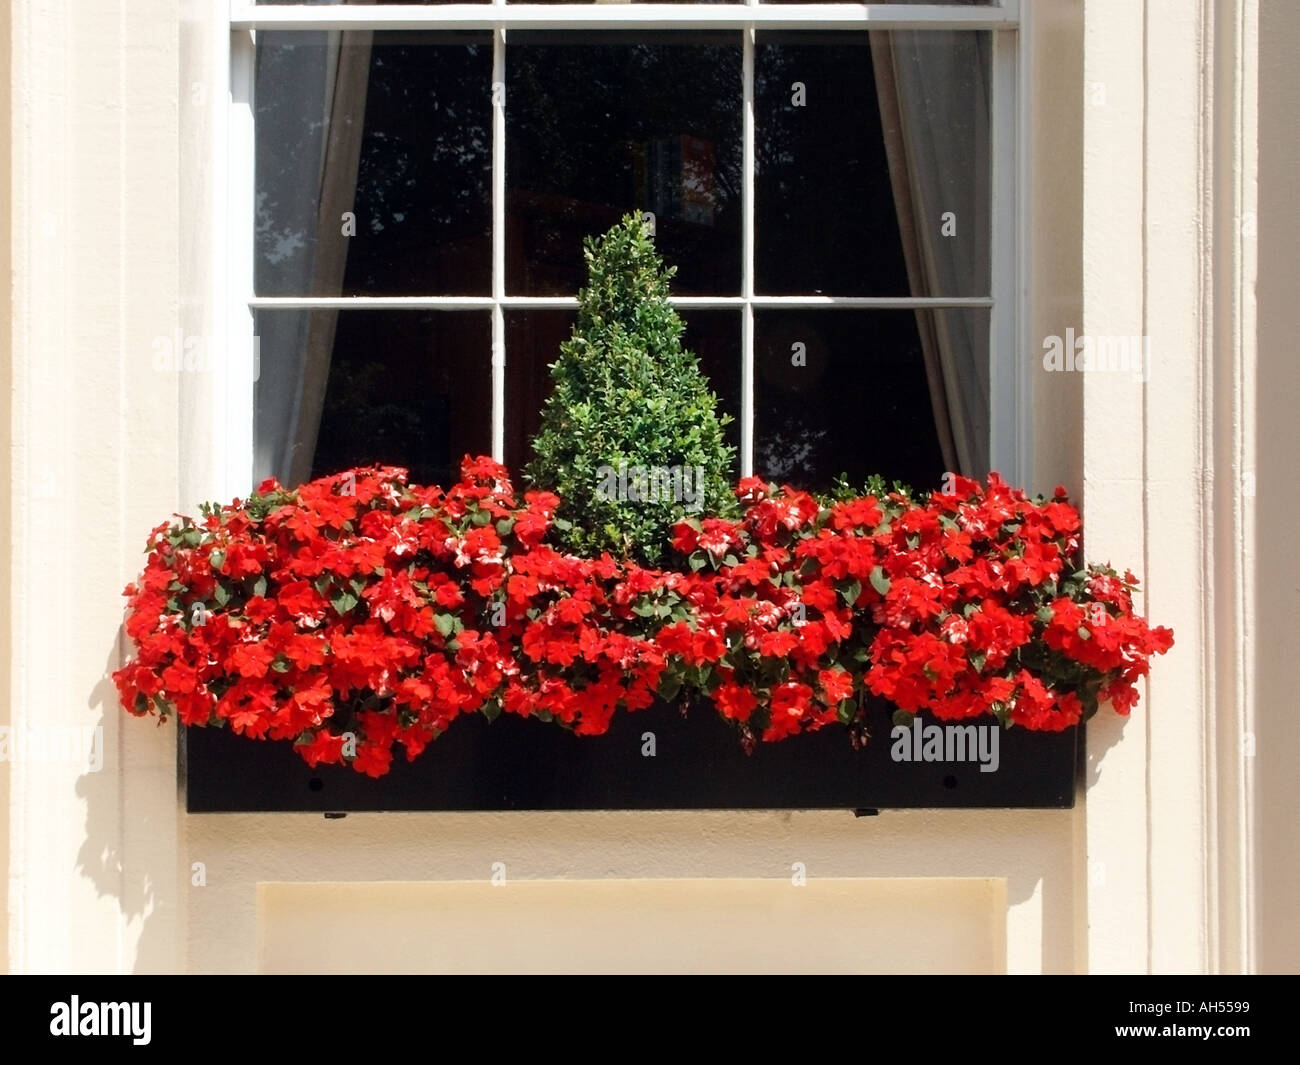 London Window Box With Red Flowers And Small Green Box